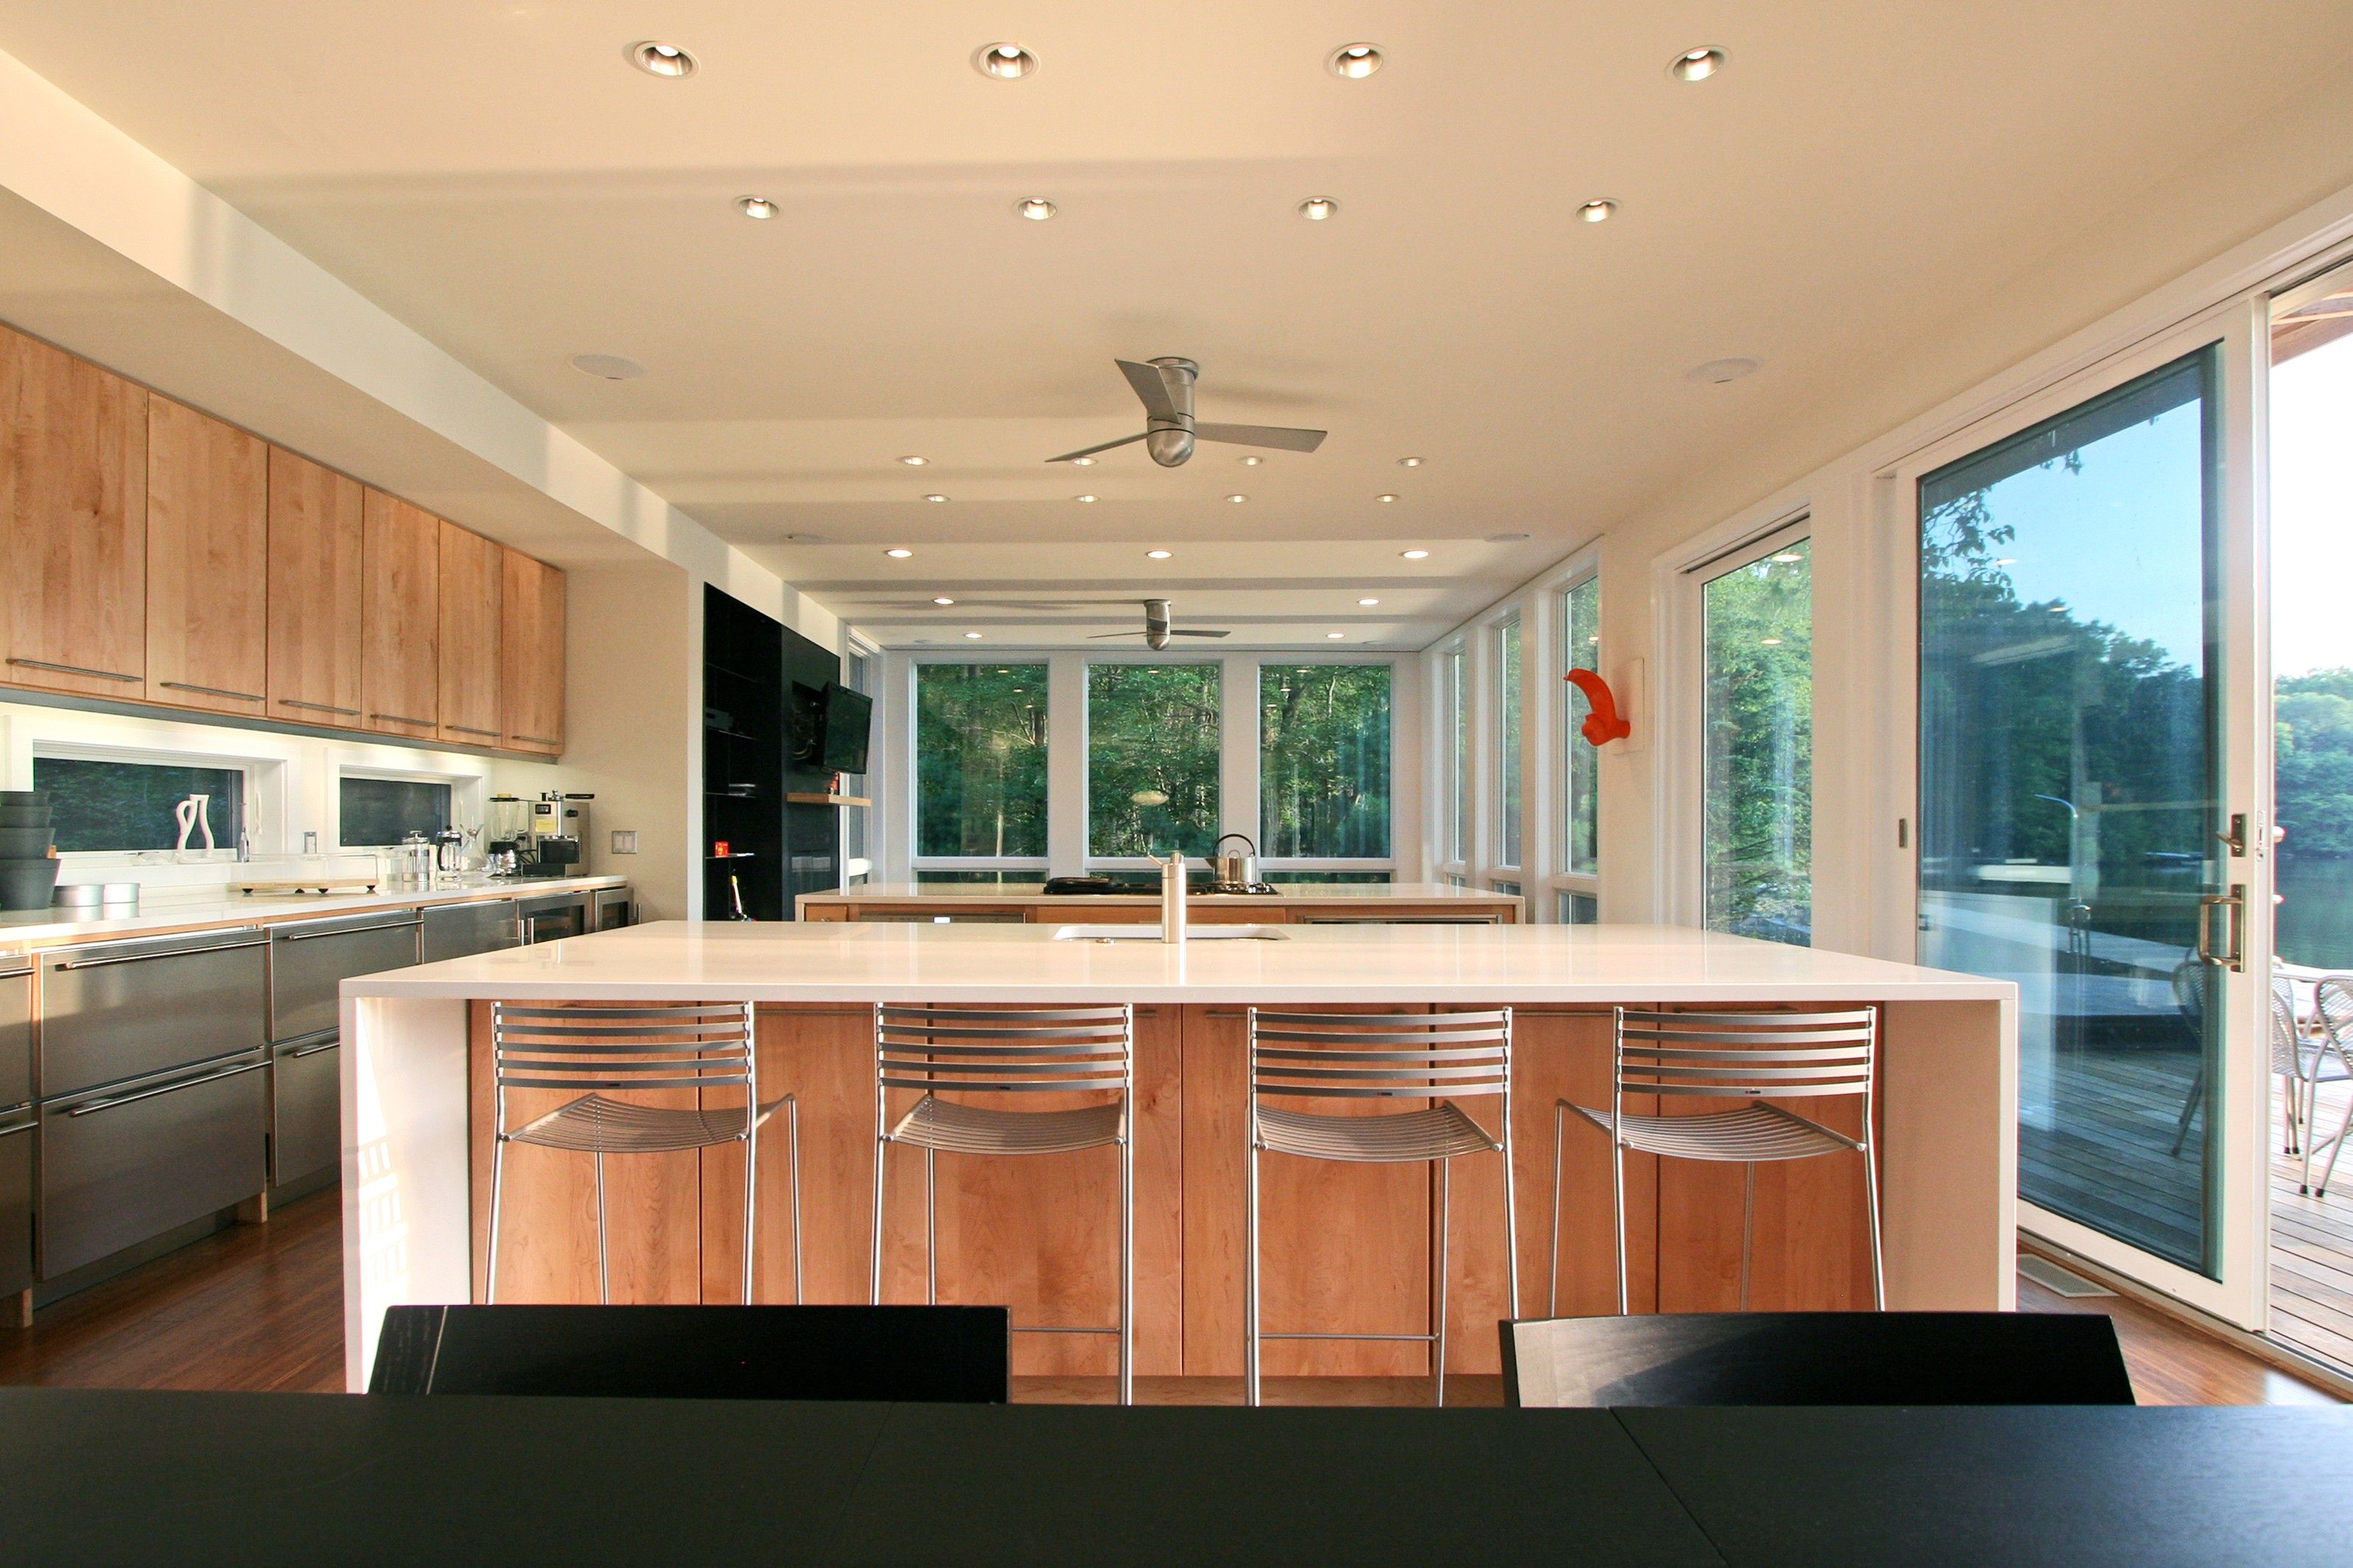 Http Homegoid Com Wp Content Uploads 2015 11 Fair Prefab Homes Small Lot For Home And House Inspiring Ideas Ceiling Fan In Kitchen Low Ceiling Kitchen Design